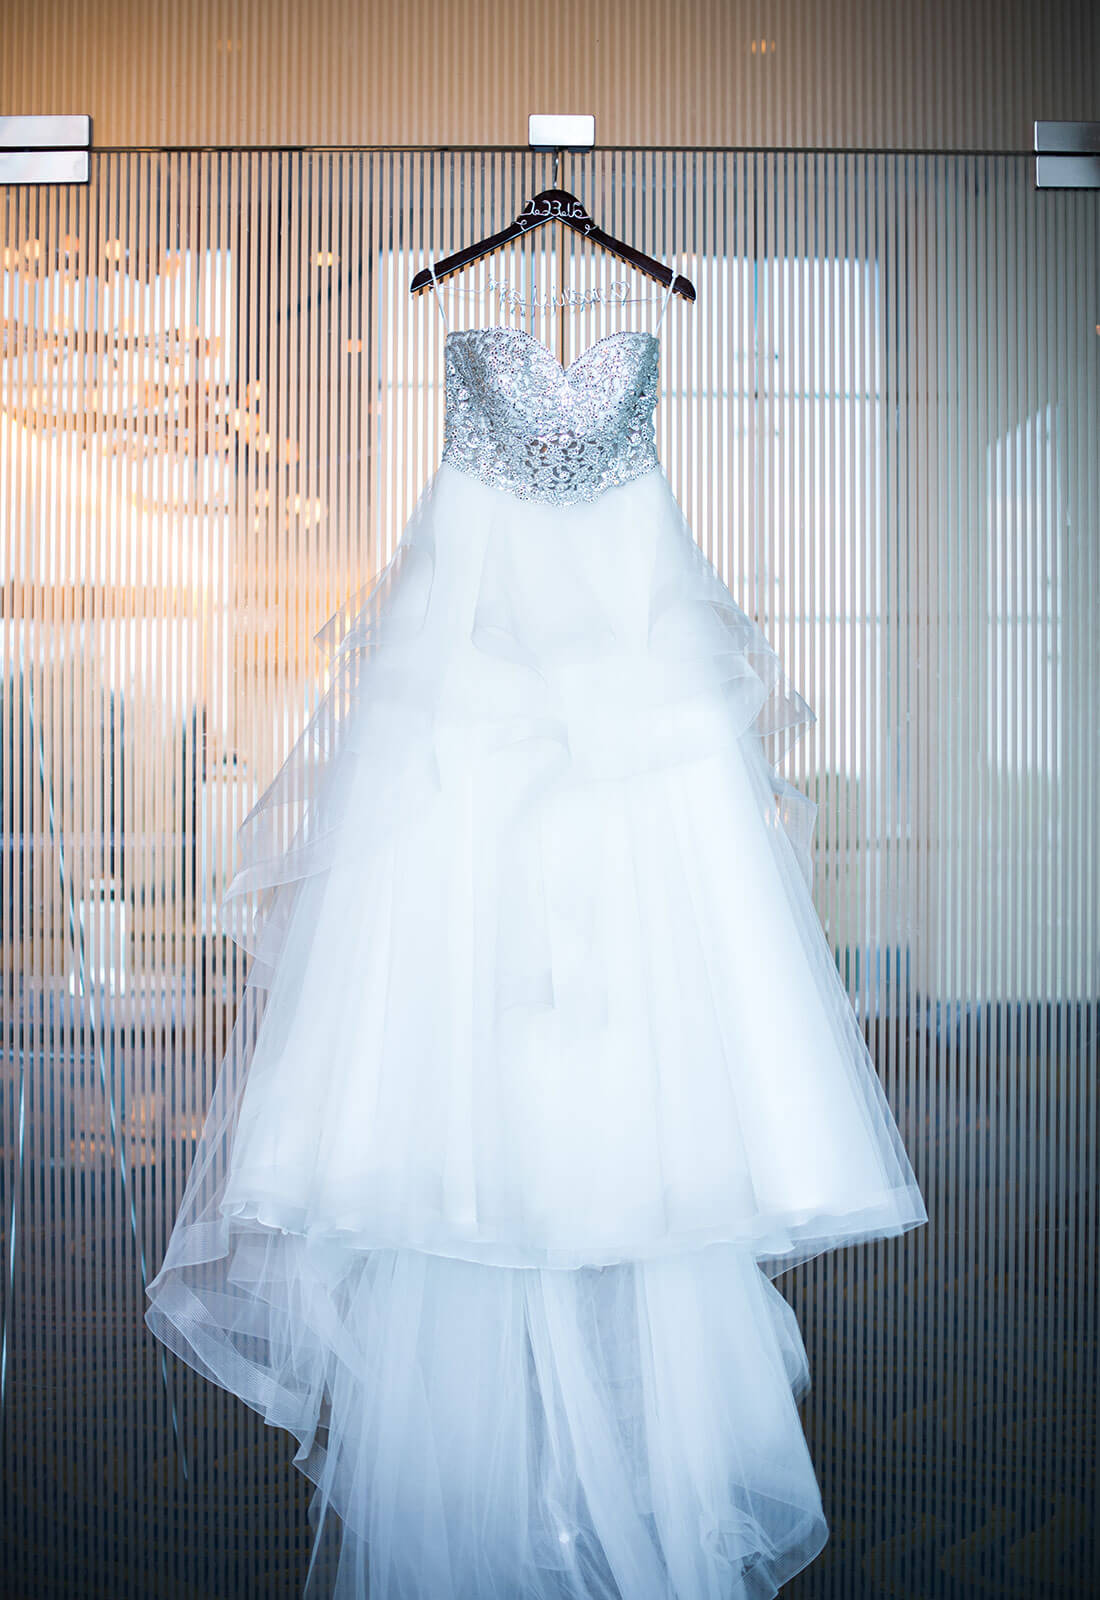 Having Fallen In Love With The Gown Shannon Had To Know What This Blinged Out Beauty Was Going Cost Her Lucky For Dream Wedding Dress